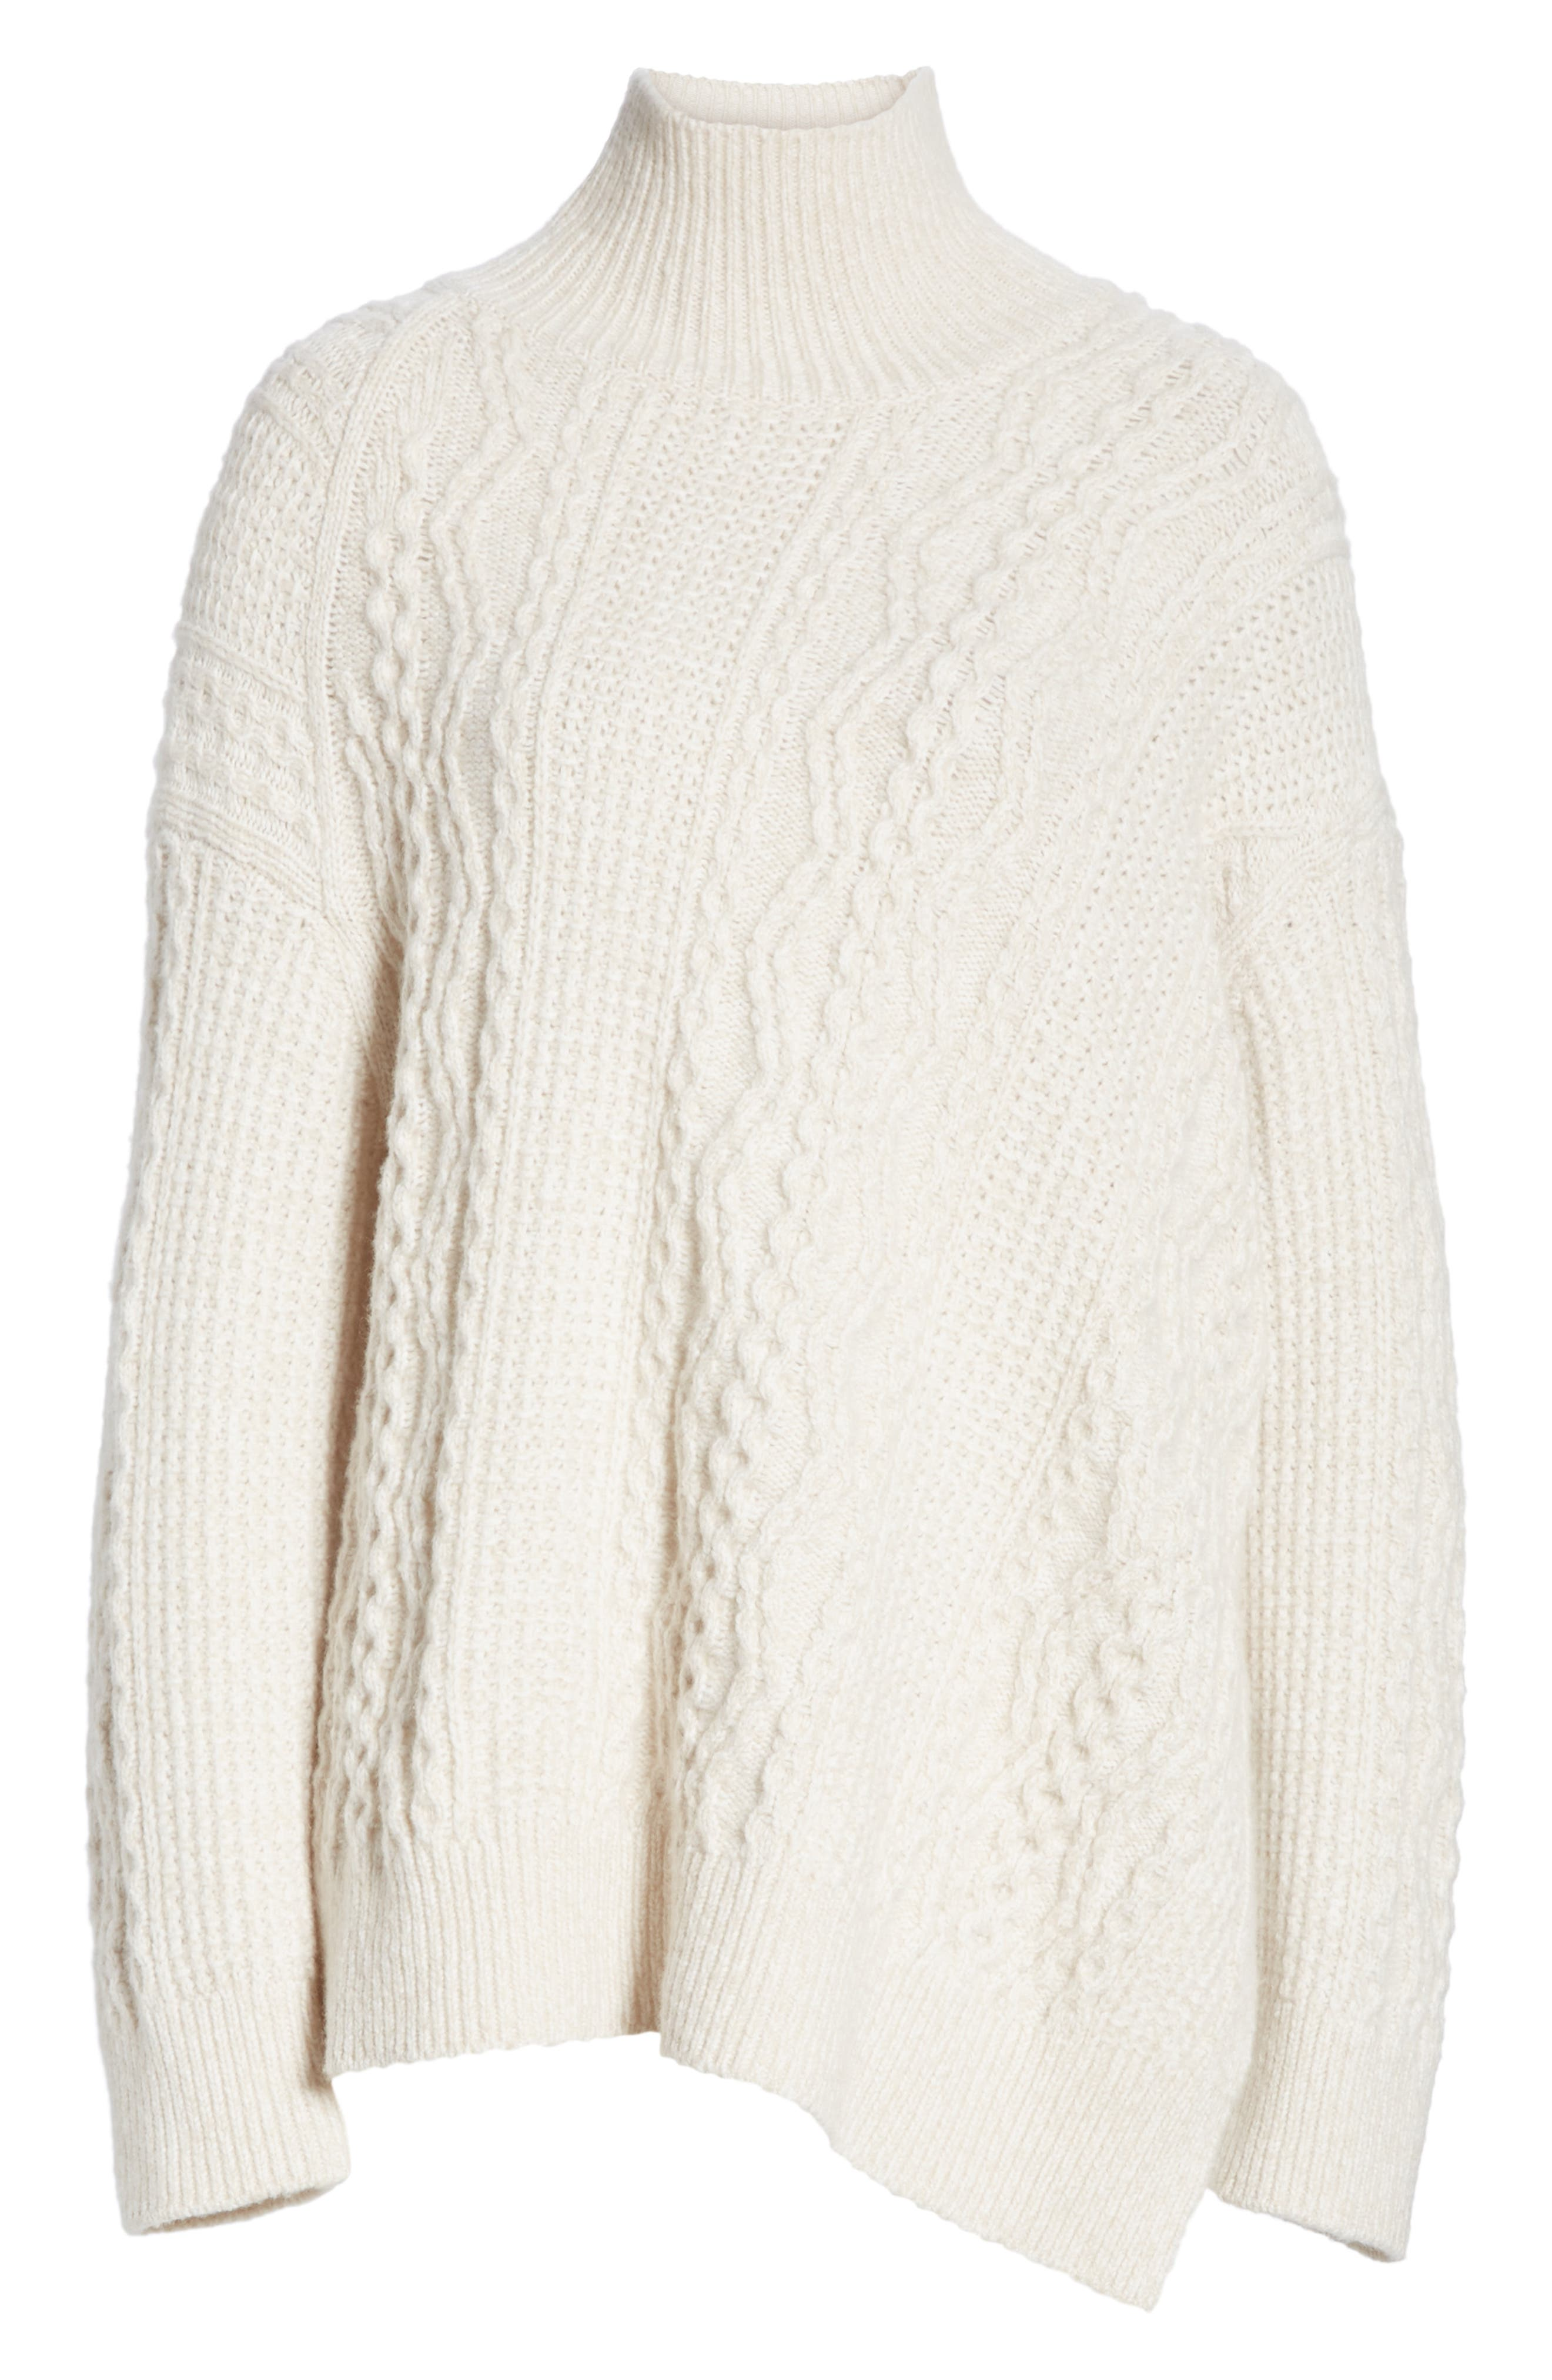 Diagonal Cable Wool Blend Turtleneck Sweater,                             Alternate thumbnail 6, color,                             OFF WHITE/ MARZIPAN